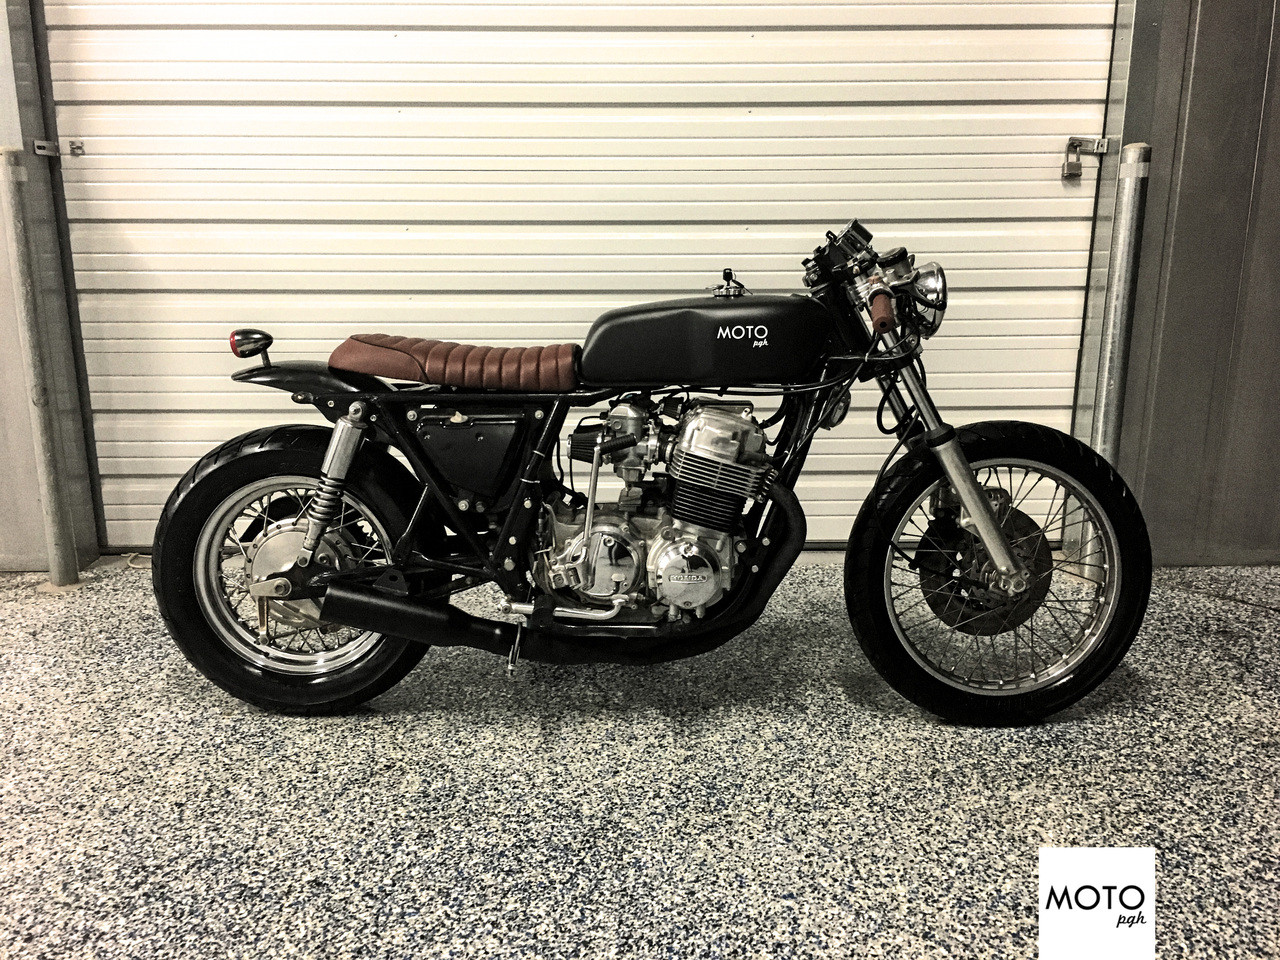 SOLD971 MOTO PGH 1978 Honda CB750k Cafe Racer The Black Tan